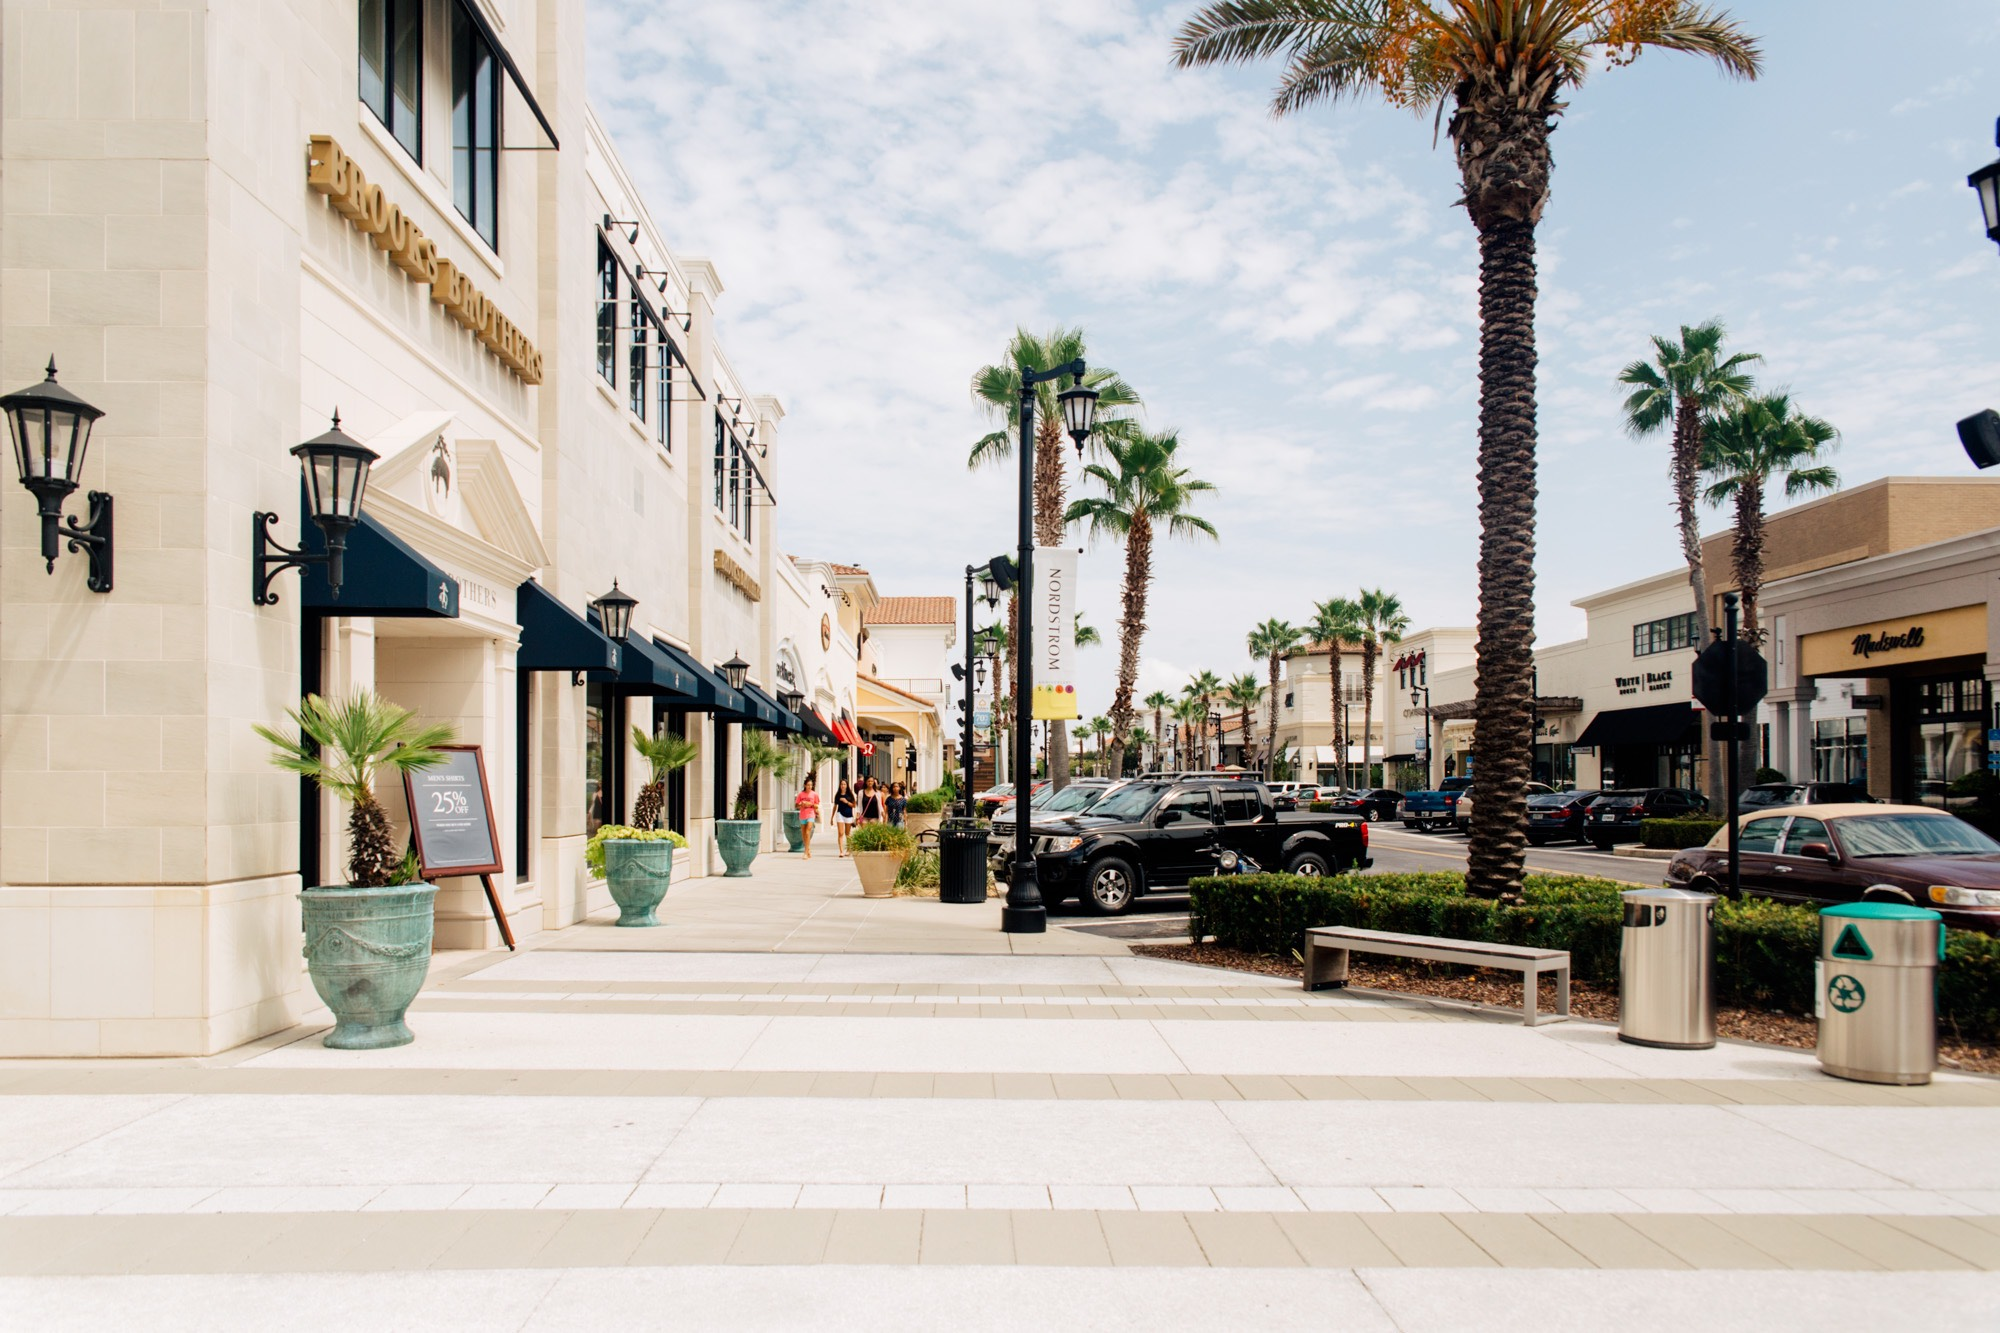 Image of How to Eat Locally at the St. Johns Town Center in Jacksonville